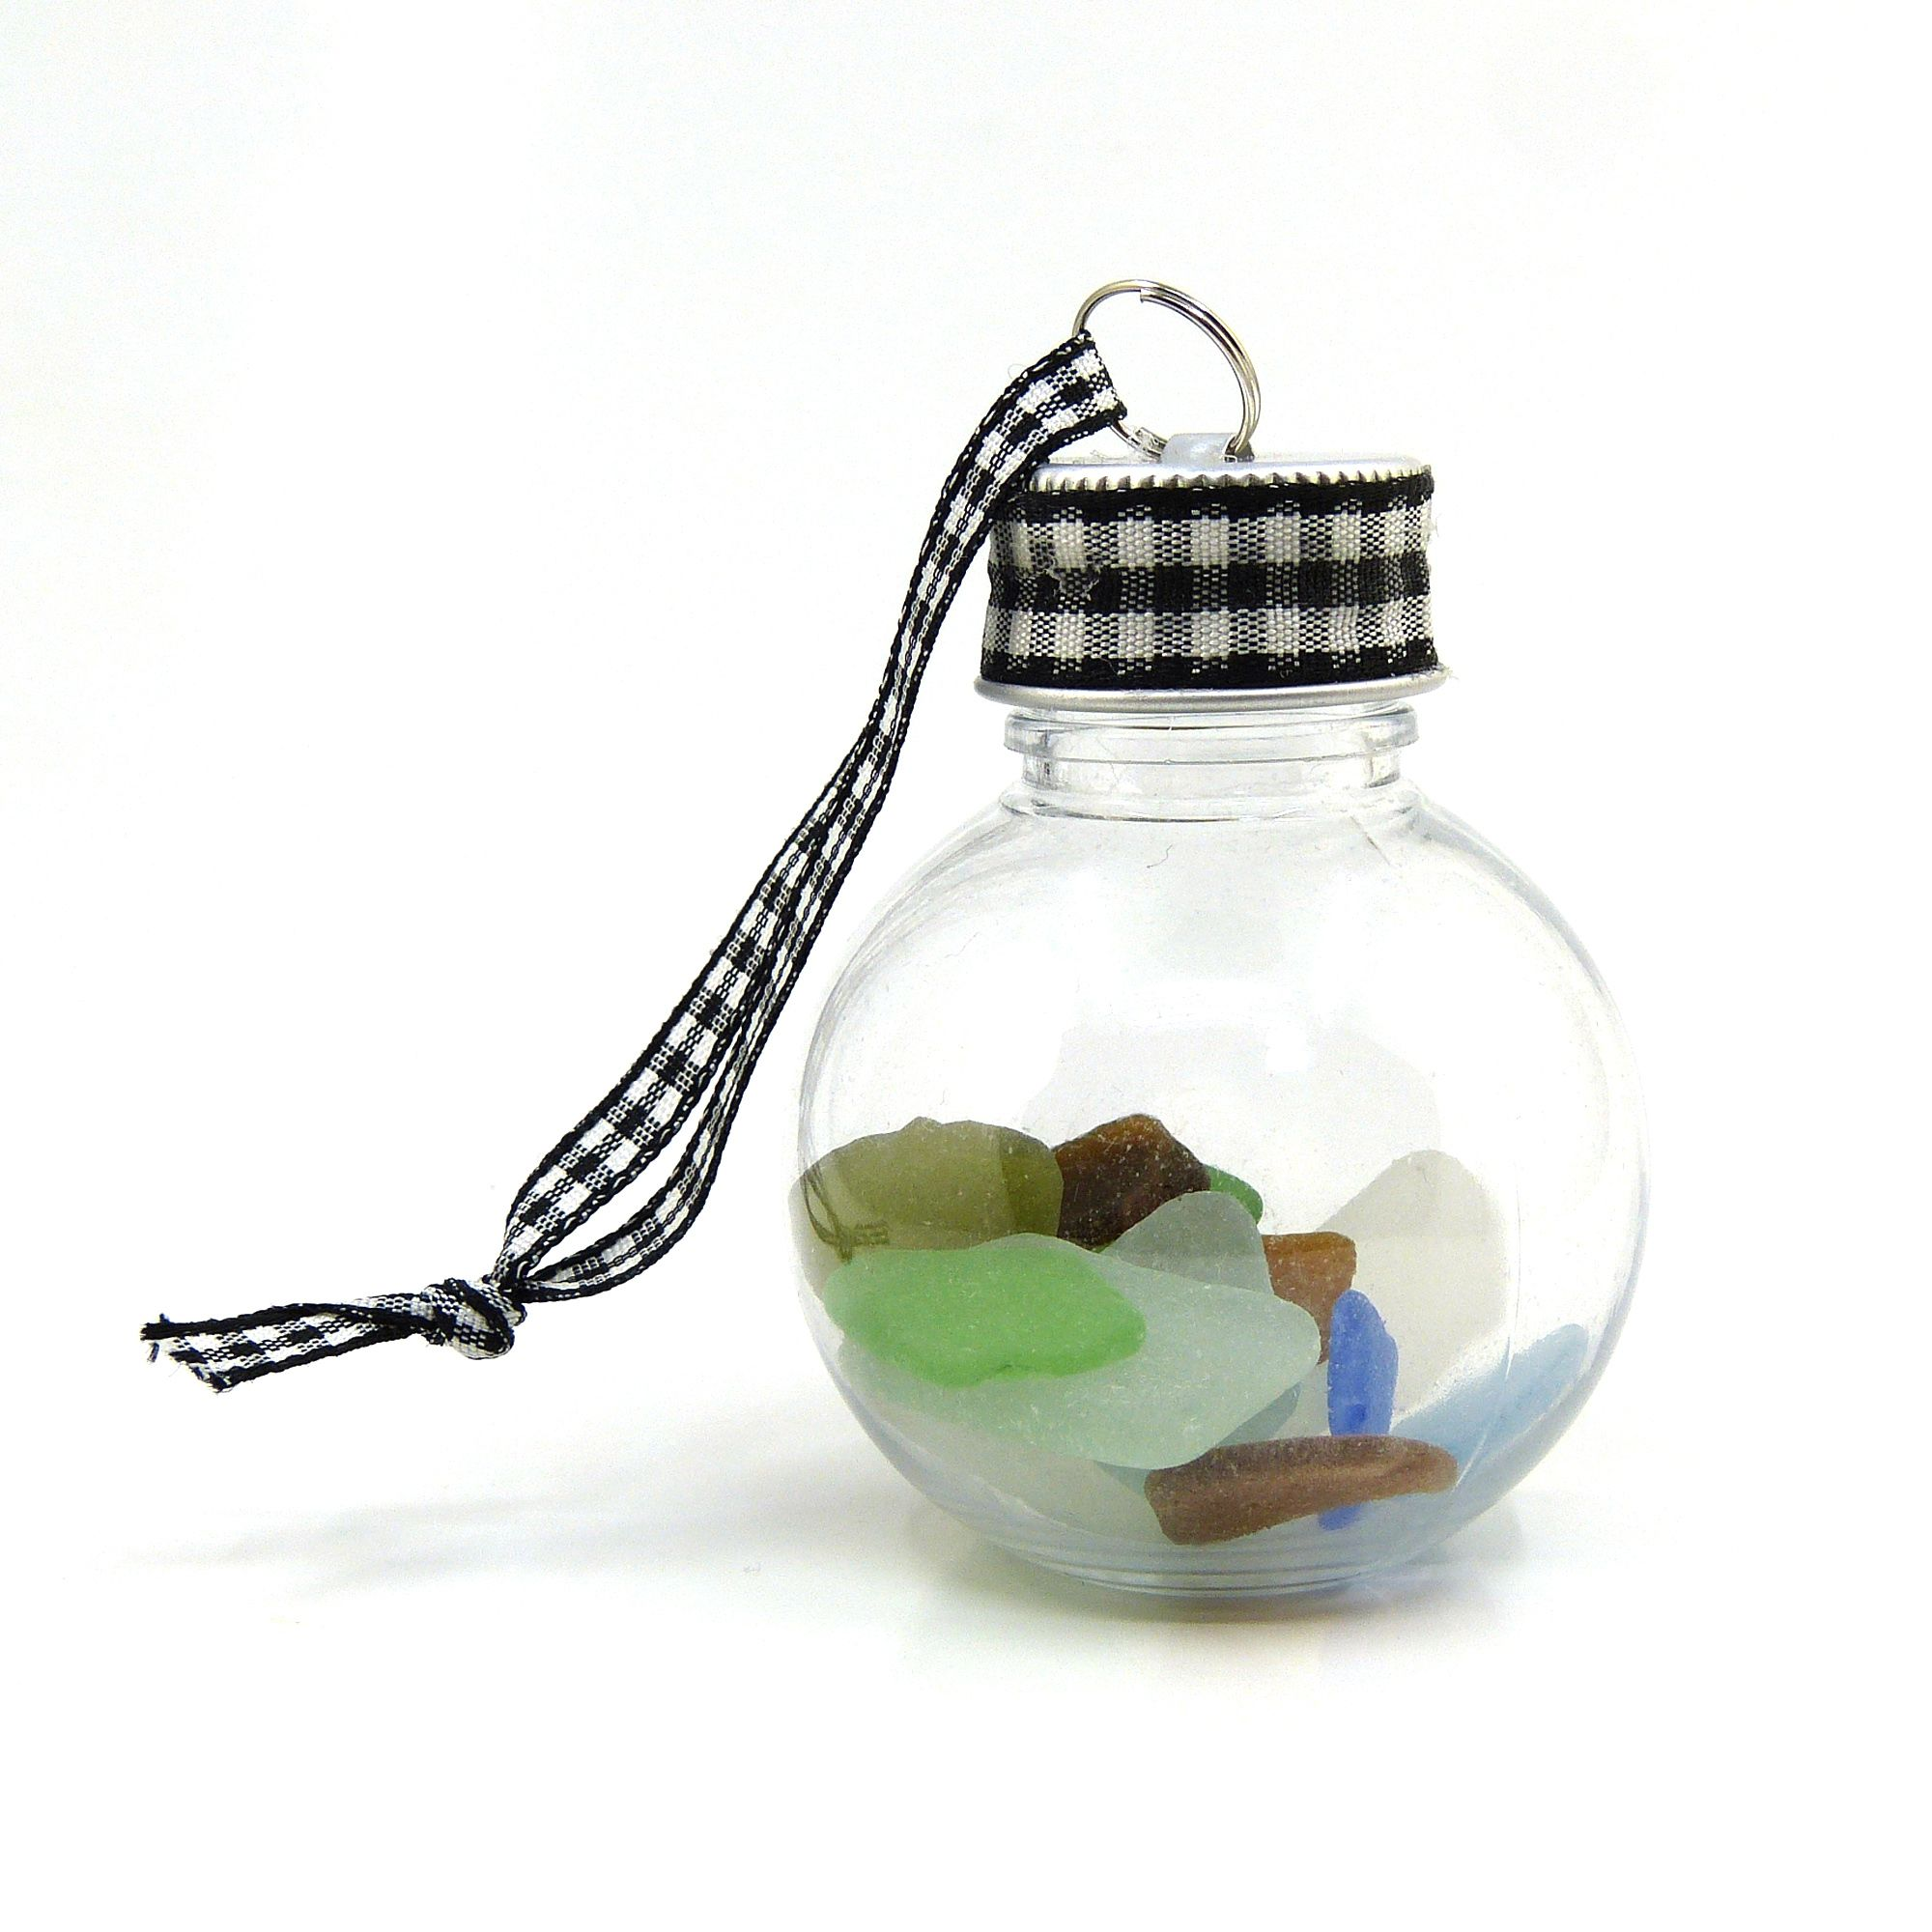 English Sea Glass filled Hanging Bauble with Northumberland Tartan Ribbon, Christmas/Wedding Decoration, Holiday Gift from Northumberland